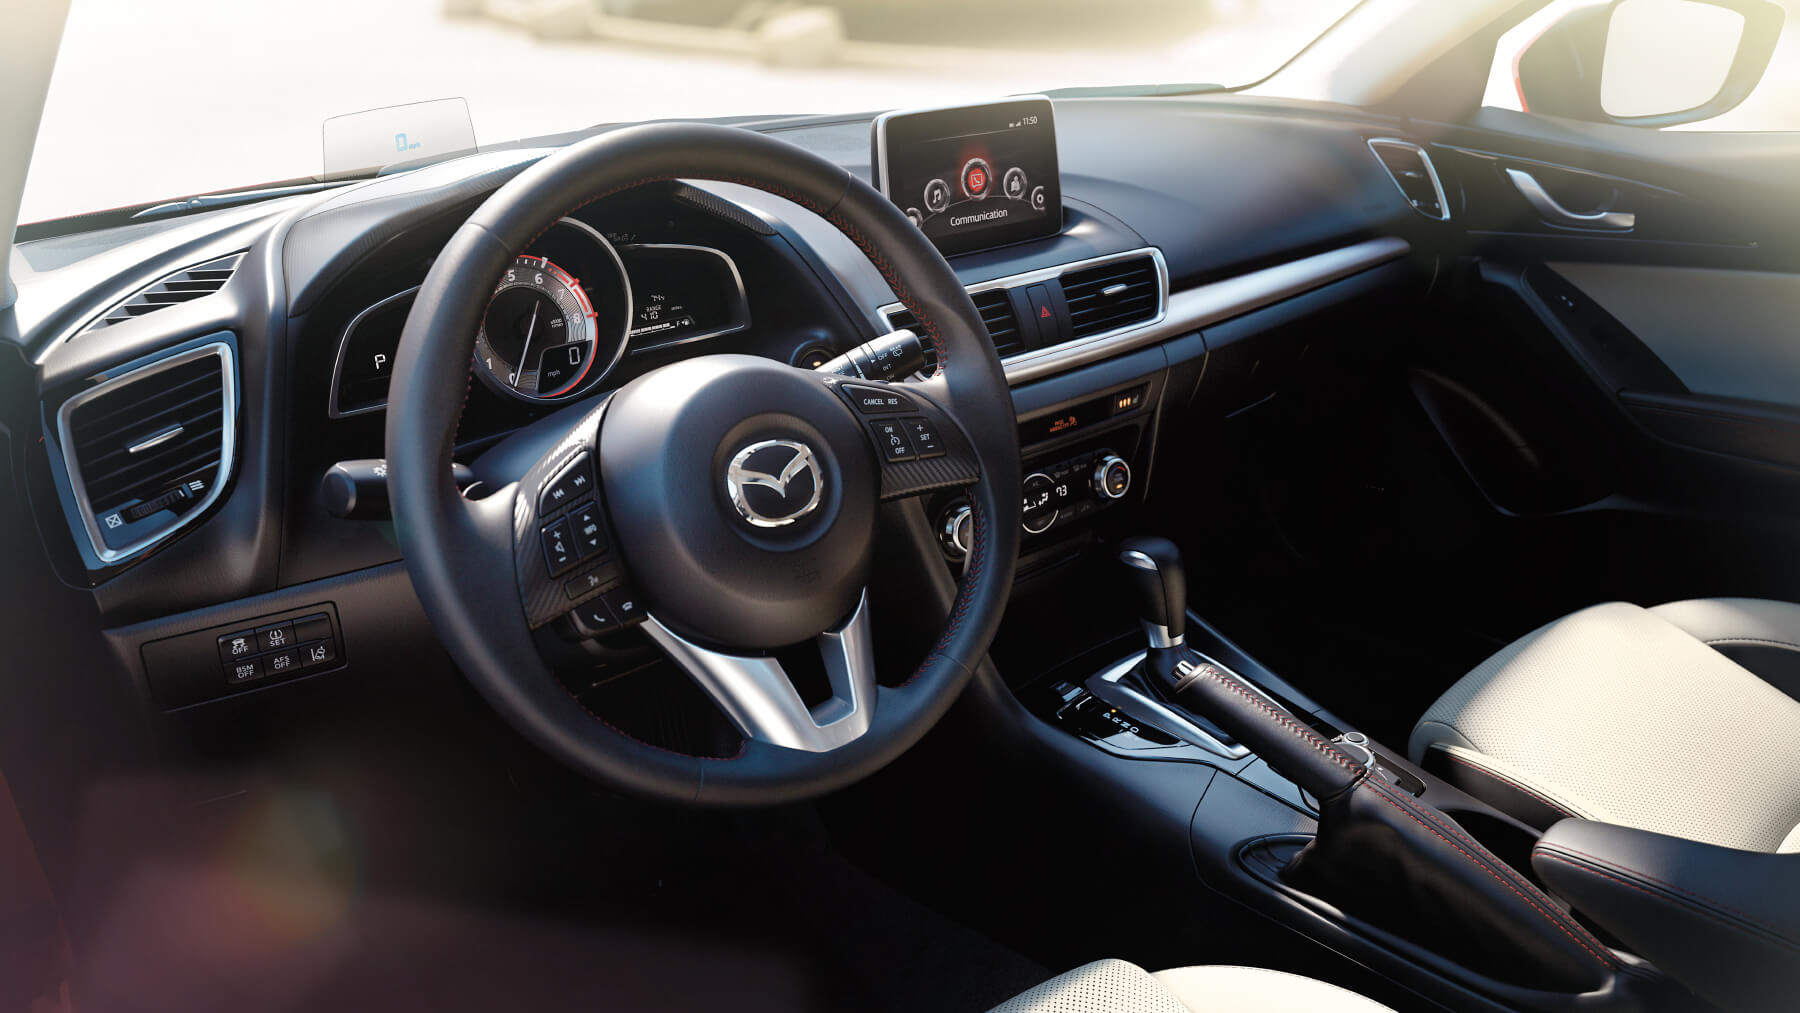 2016 mazda 3 sedan vs 2016 honda civic comparison review by thompson mazda glen burnie md. Black Bedroom Furniture Sets. Home Design Ideas